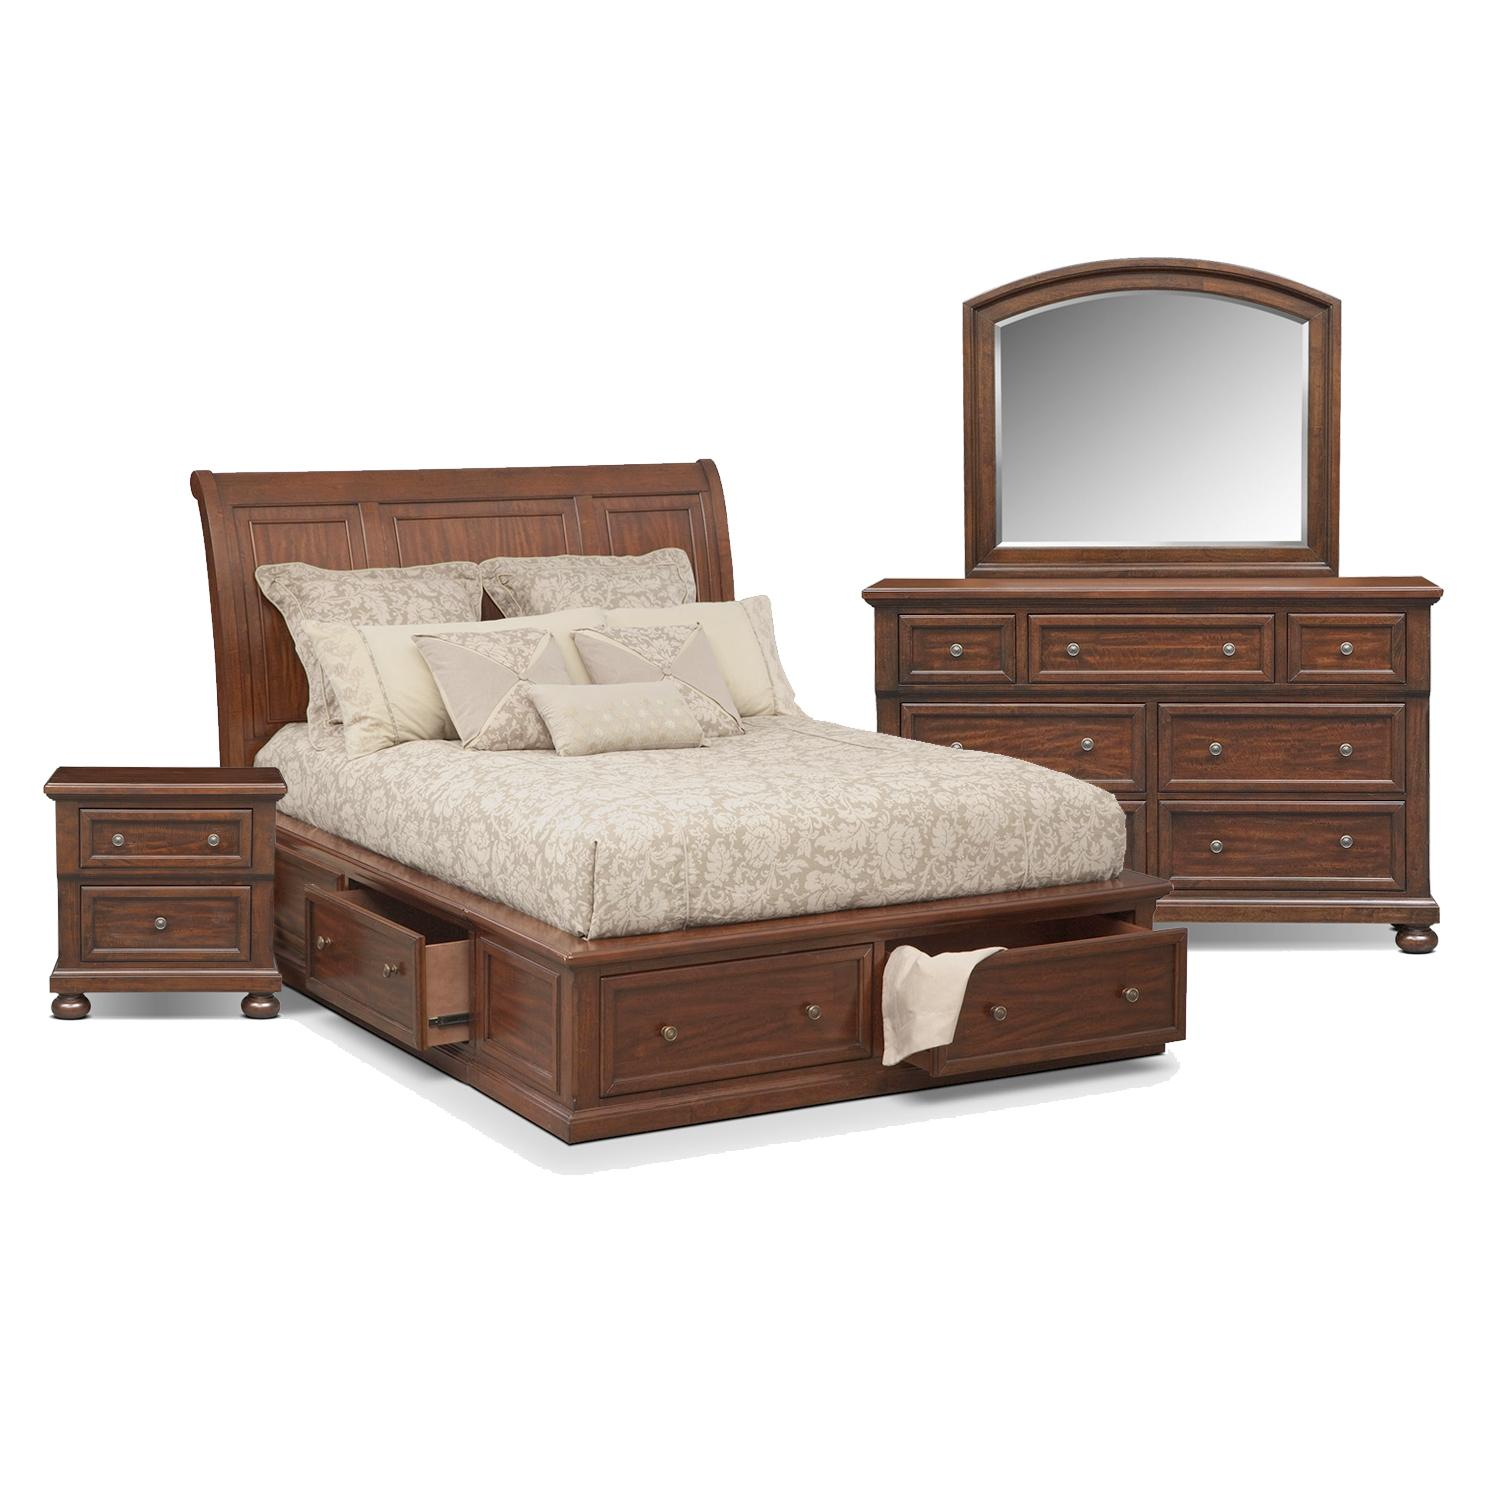 bedroom furniture | value city furniture